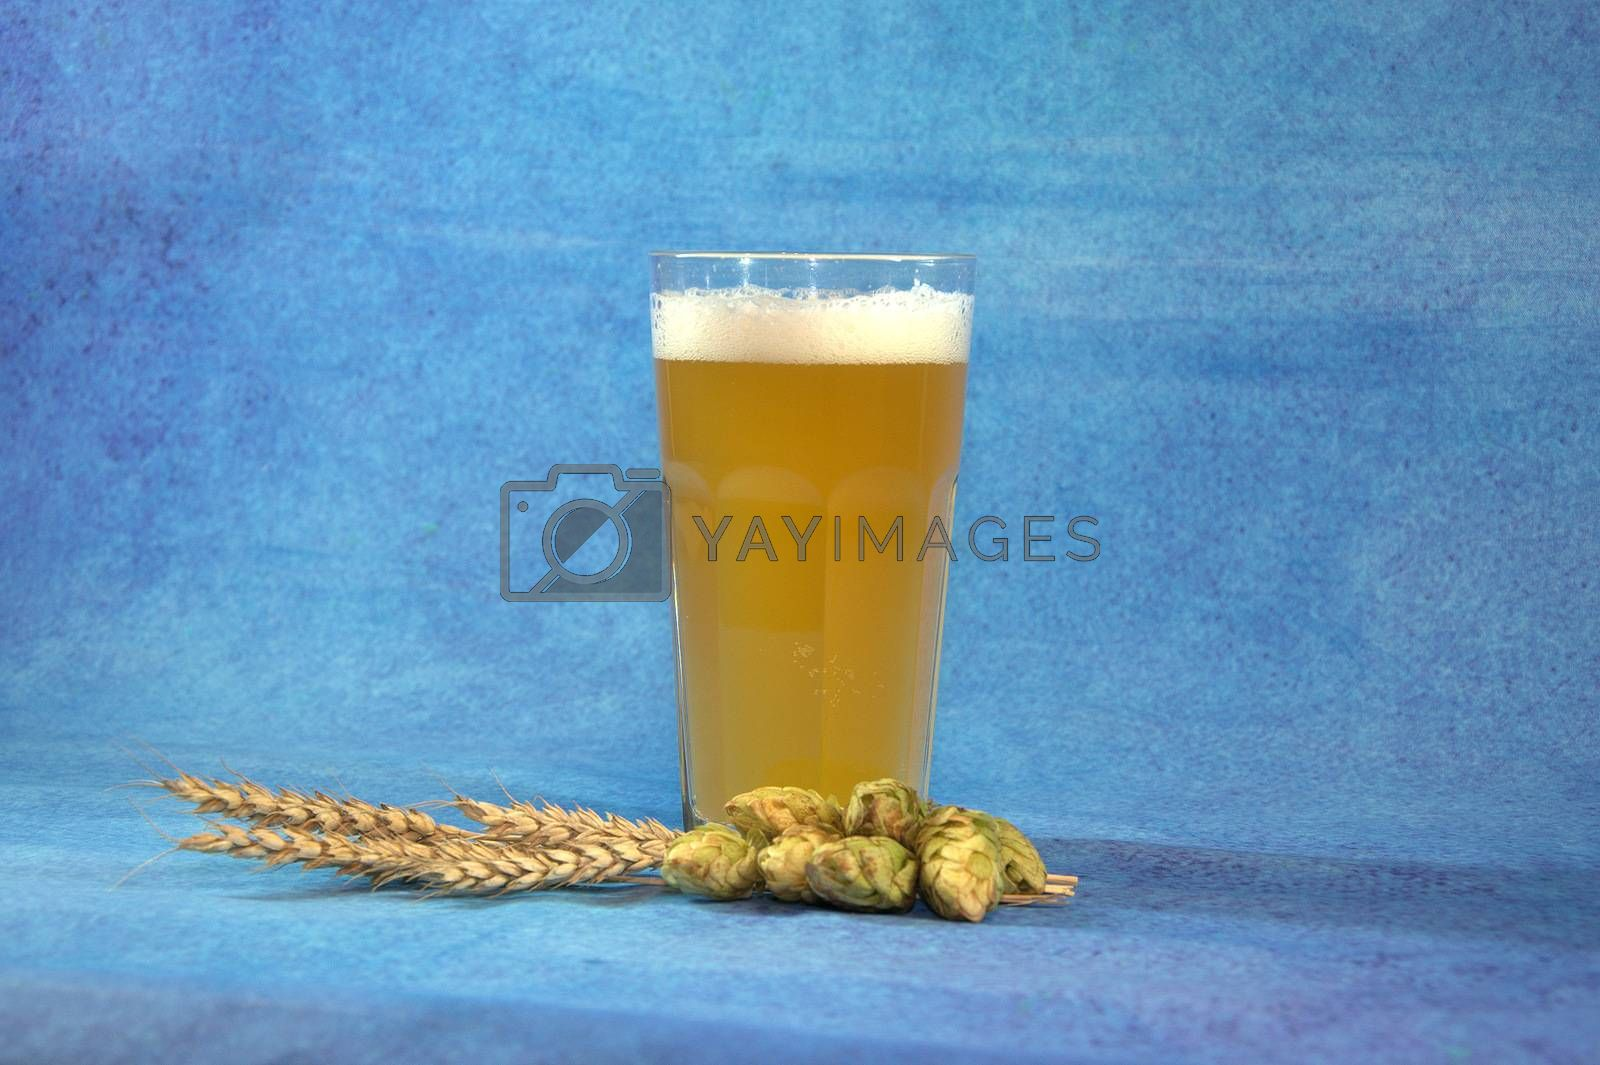 A full glass of light beer with foam, next to ears of wheat and hops. Blue background. Close-up.